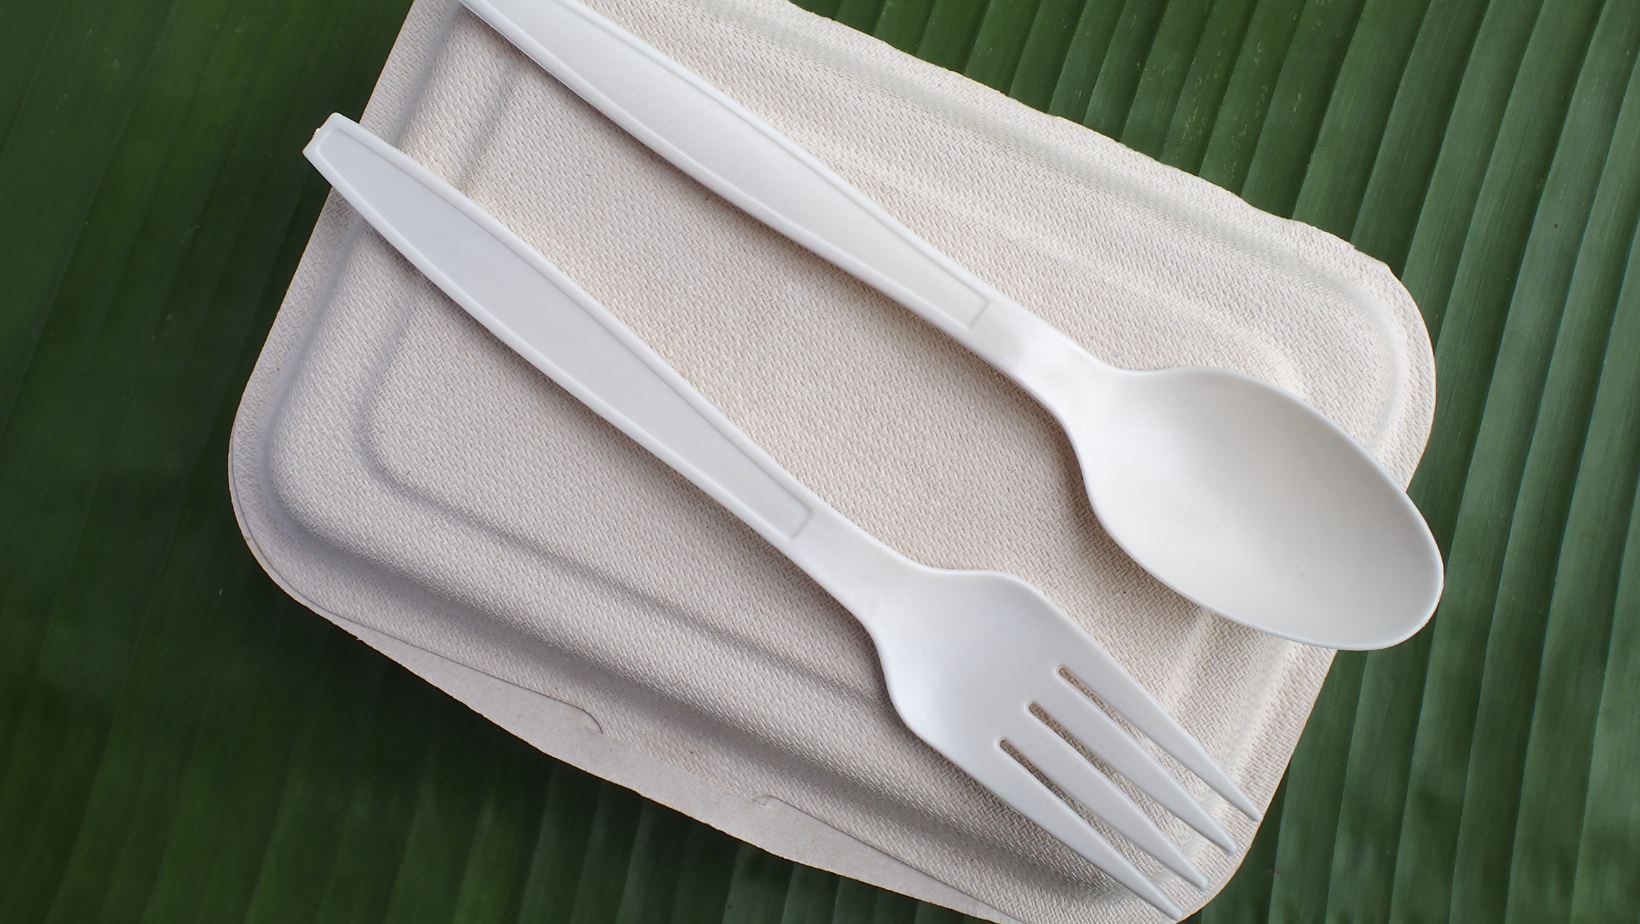 Bioplastic food containers against a green background